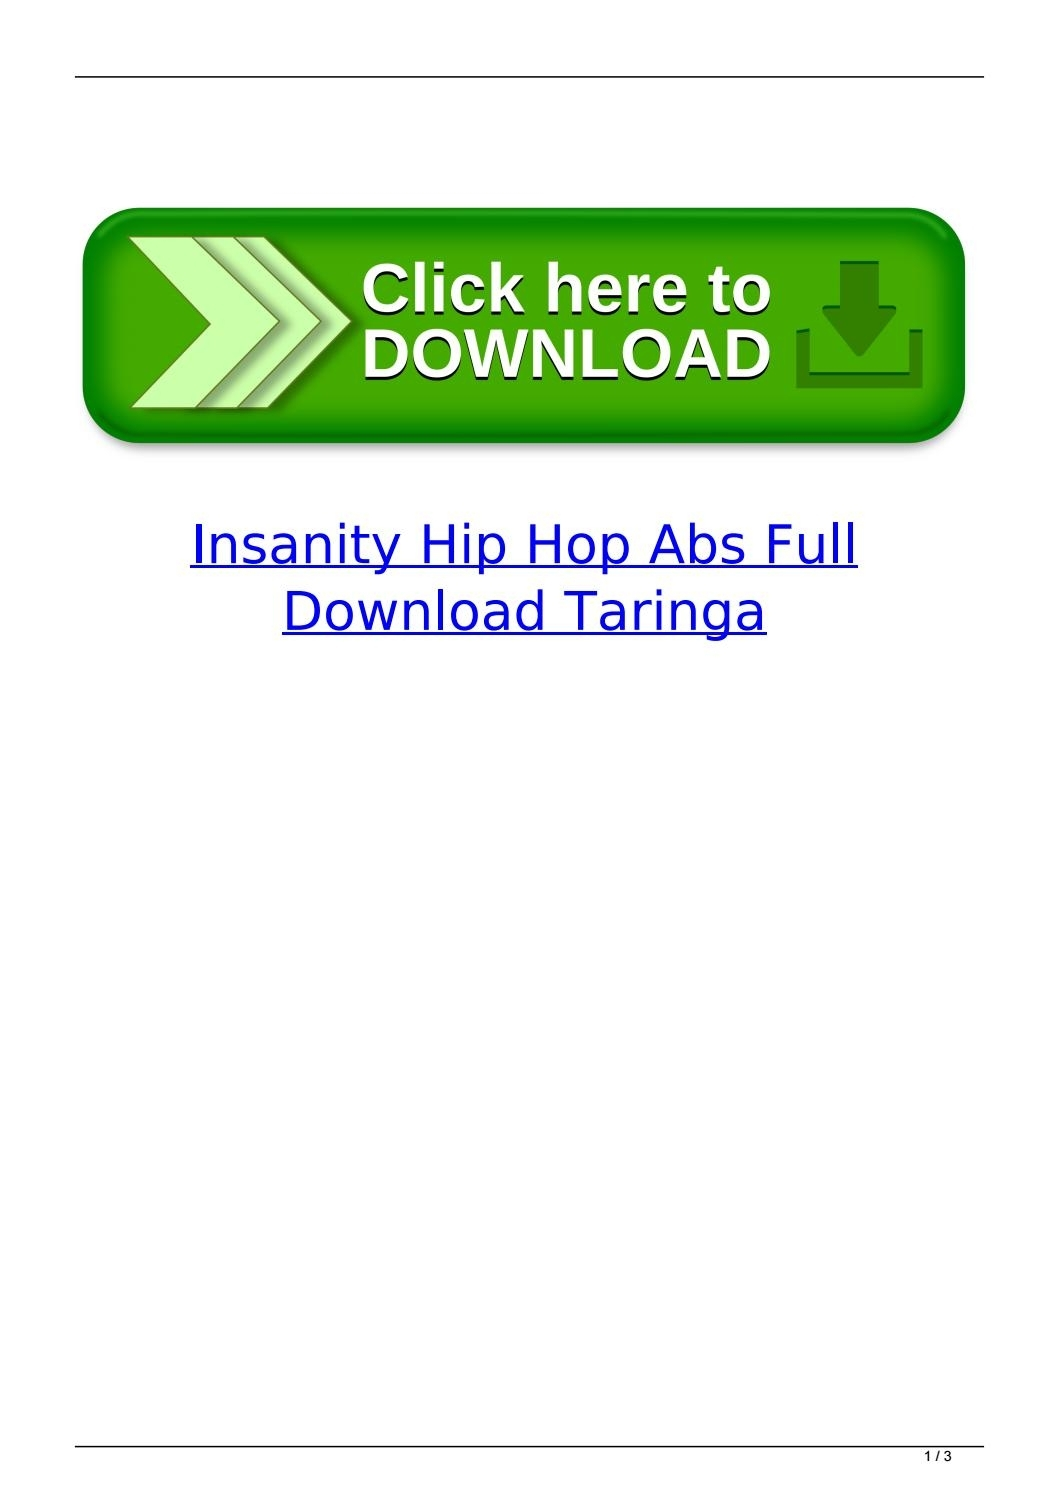 Insanity Hip Hop Abs Full Download Taringaulfisima - Issuu throughout Shaun T Hip Hop Abs Schedule